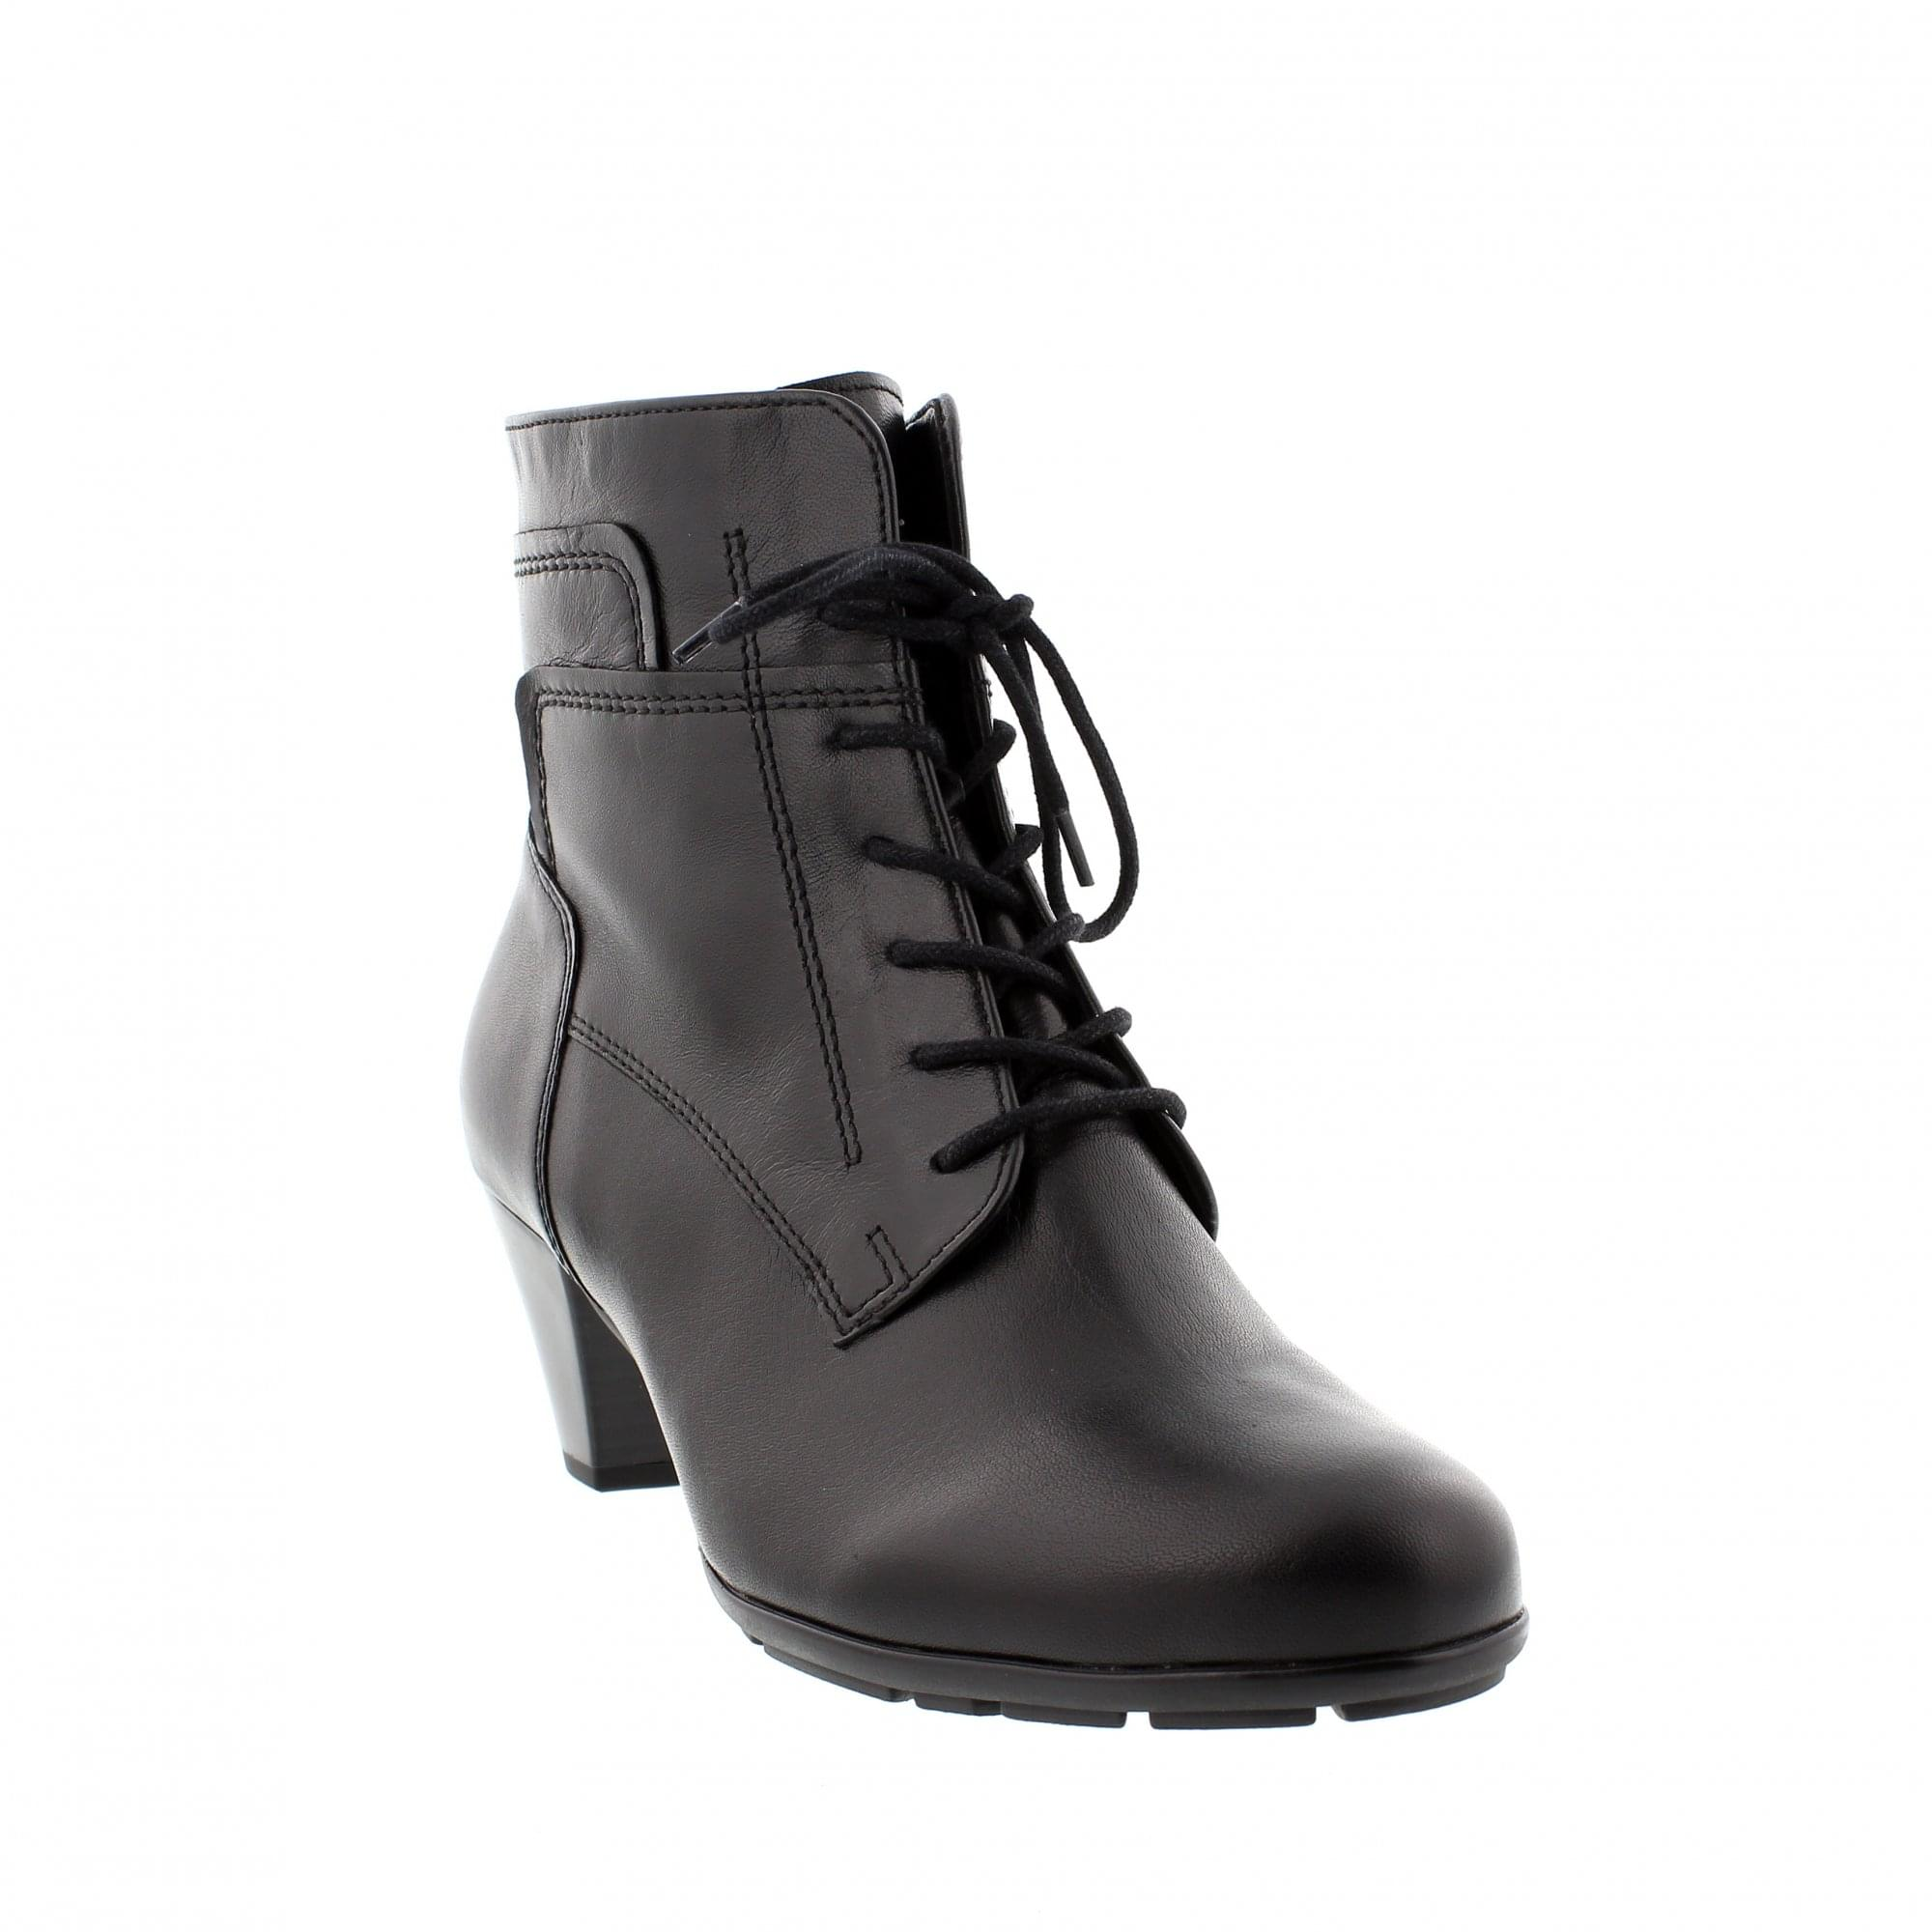 9c0d5c1e509 Gabor National 75-644-27 Womens Ankle Boots